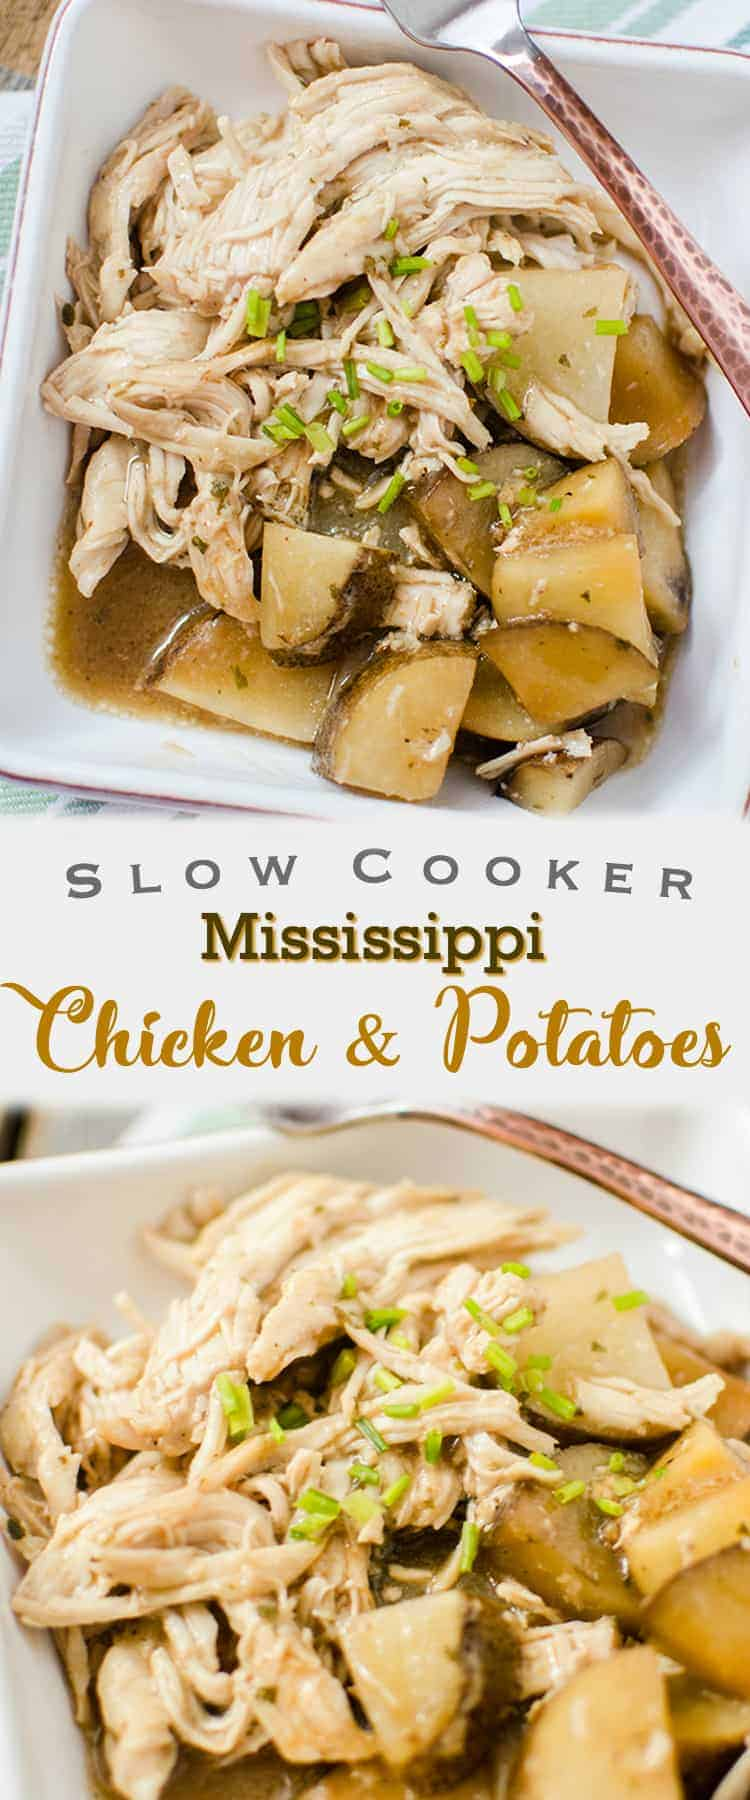 The star ingredients of this Slow Cooker Mississippi Chicken and Potatoes recipe is butter, ranch dressing mix and au jus - such a tasty flavour combination. I love it because it's a true delicious slow cooker meal.